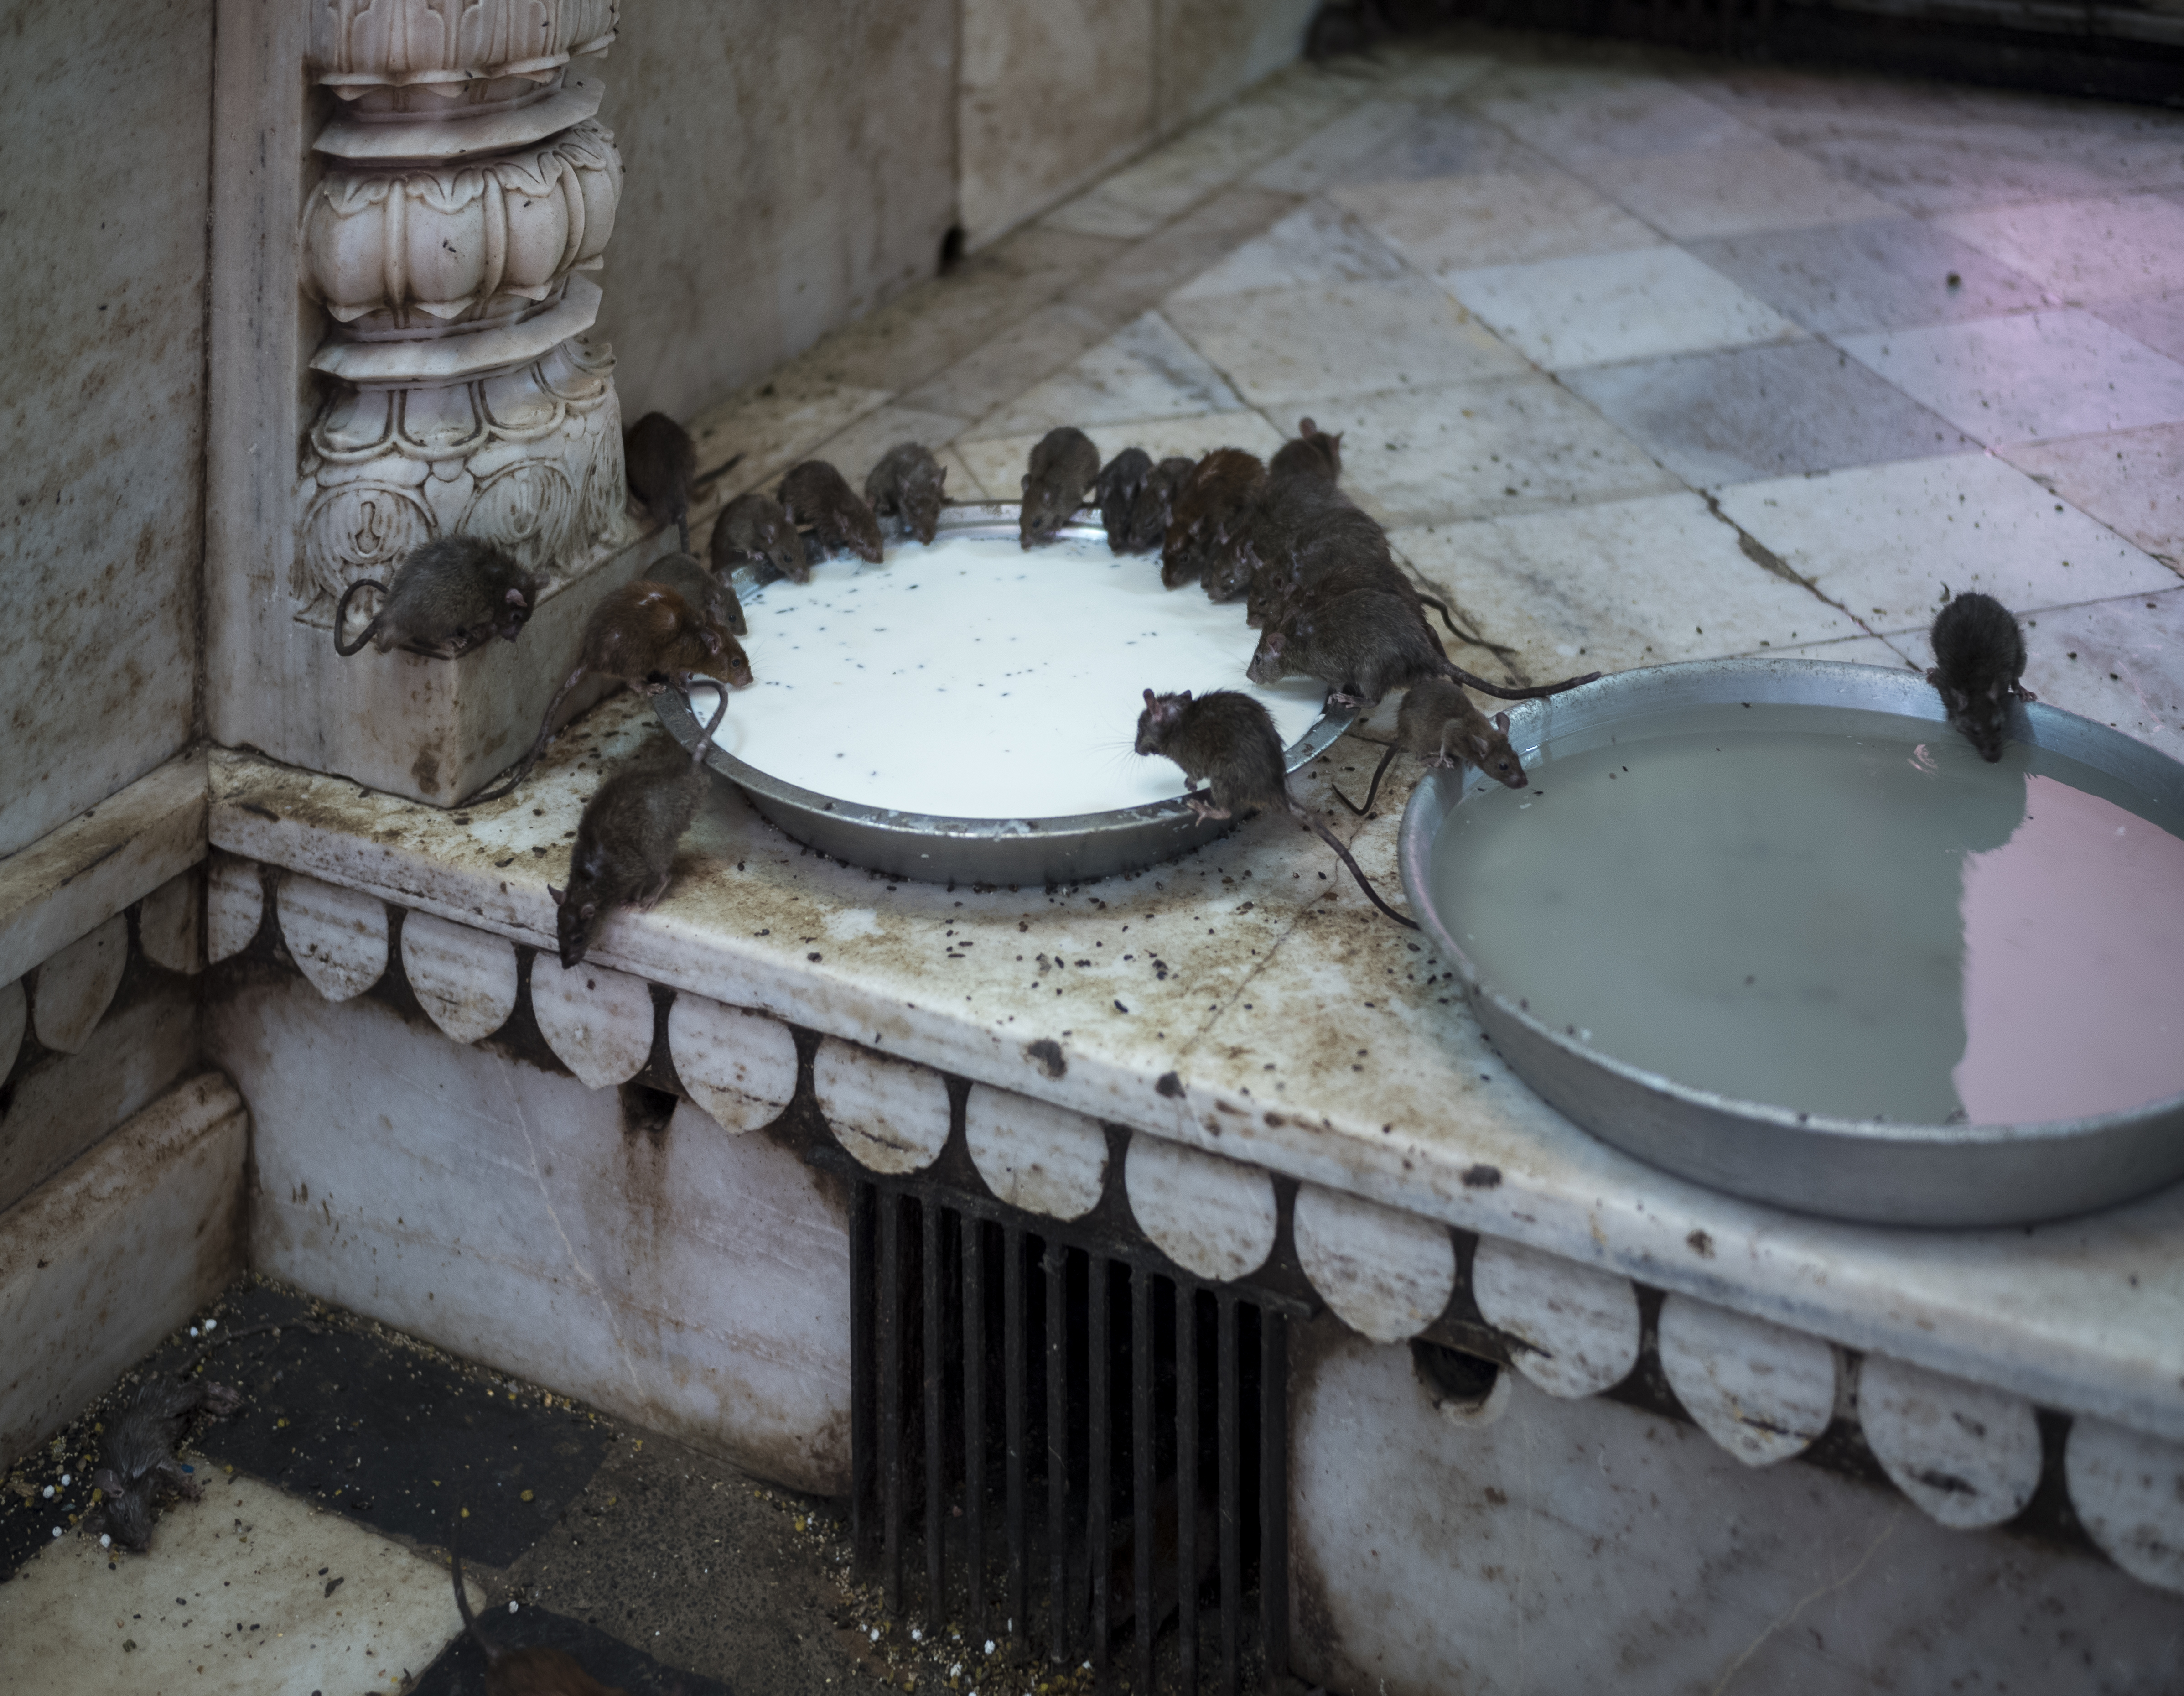 Rats Feeding on Milk & Water - Karni Mata Temple